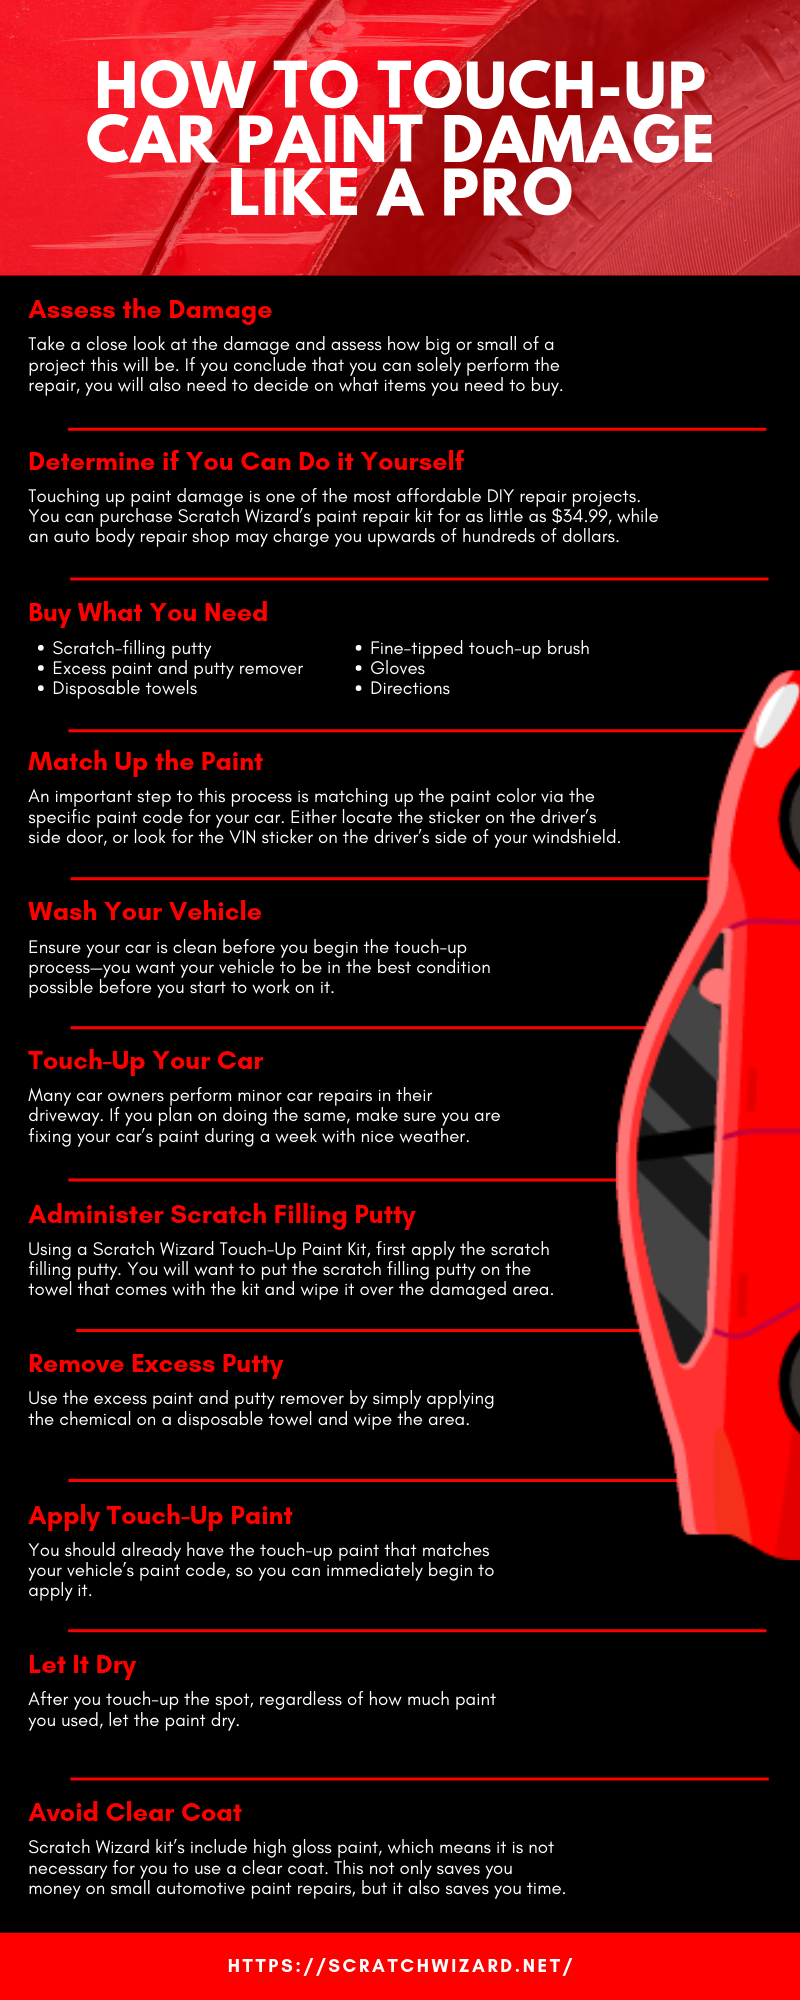 How to Touch-Up Car Paint Damage Like A Pro infographics